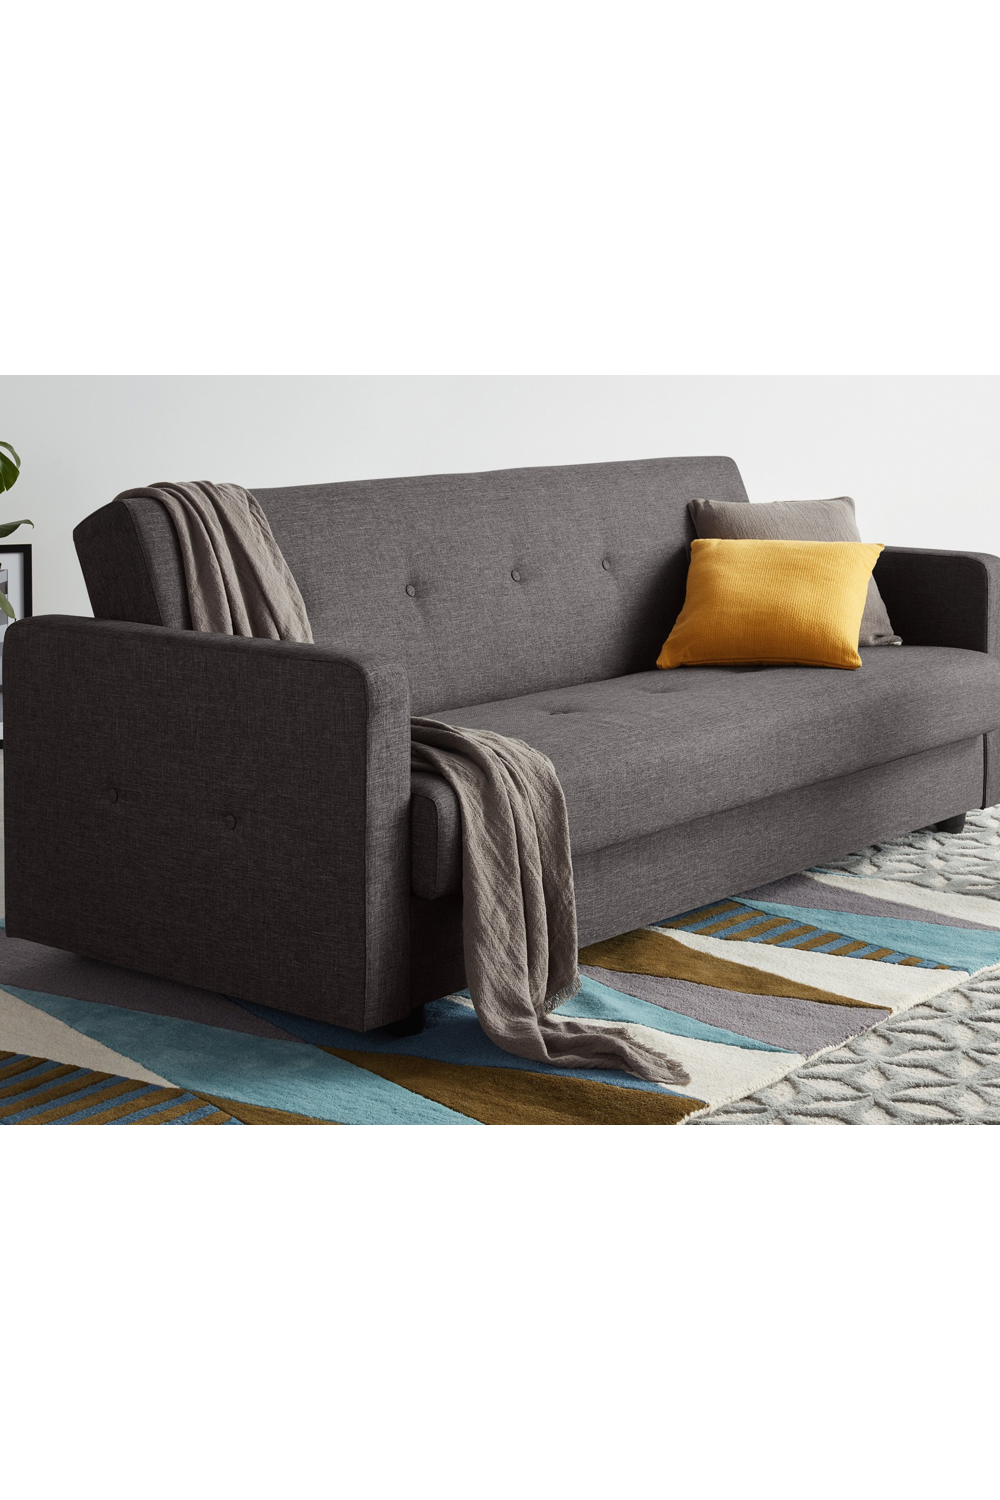 Chou Schlafsofa Mit Bettkasten Cygnetgrau Sofa Bed With Storage Sofa Bed Bed